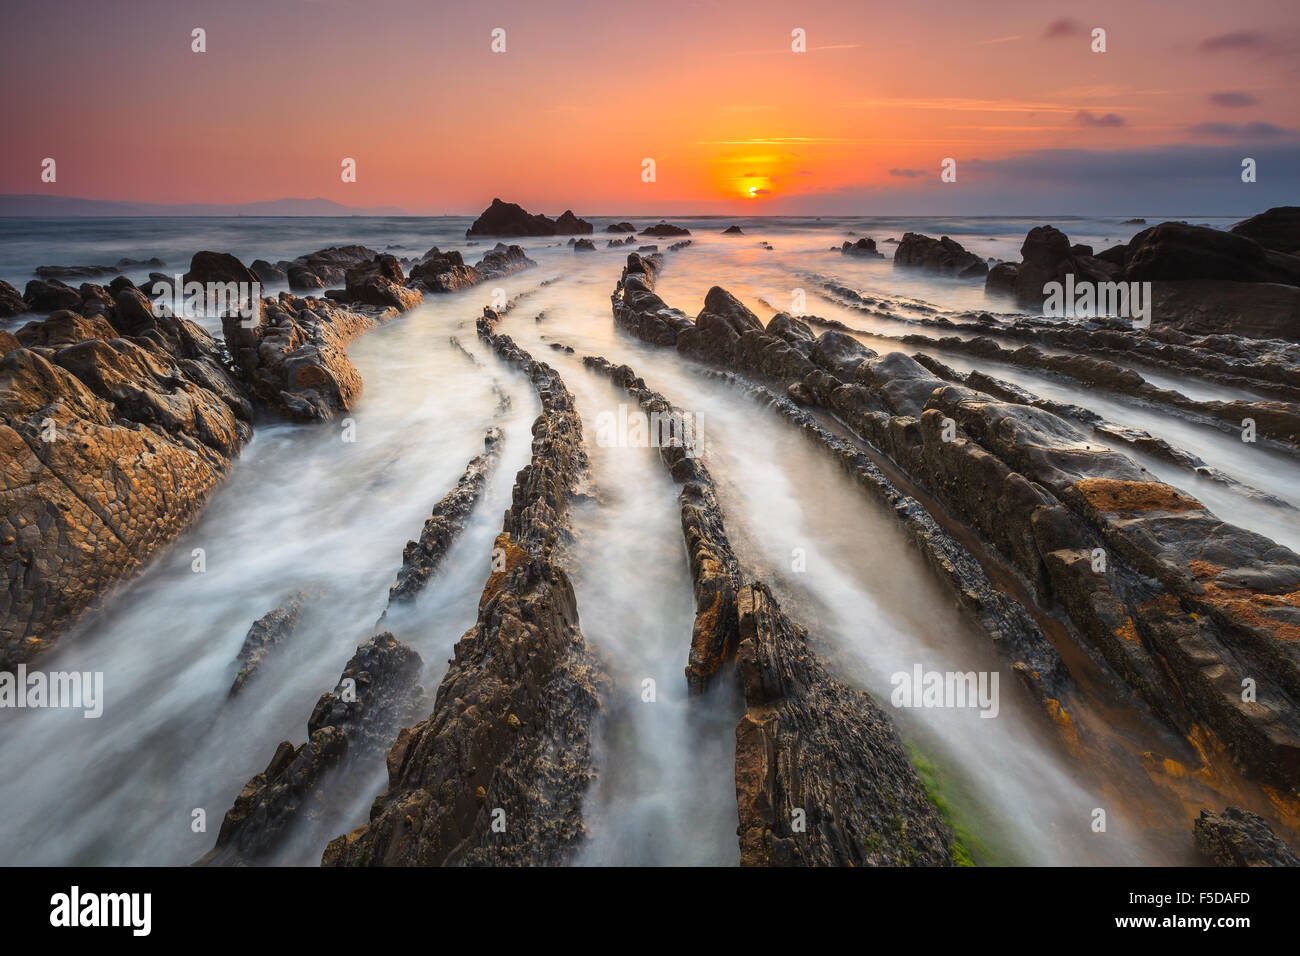 The wonderful Barrika Beach, in Vizcaya, Basque Country, Spain, by sunset. - Stock Image